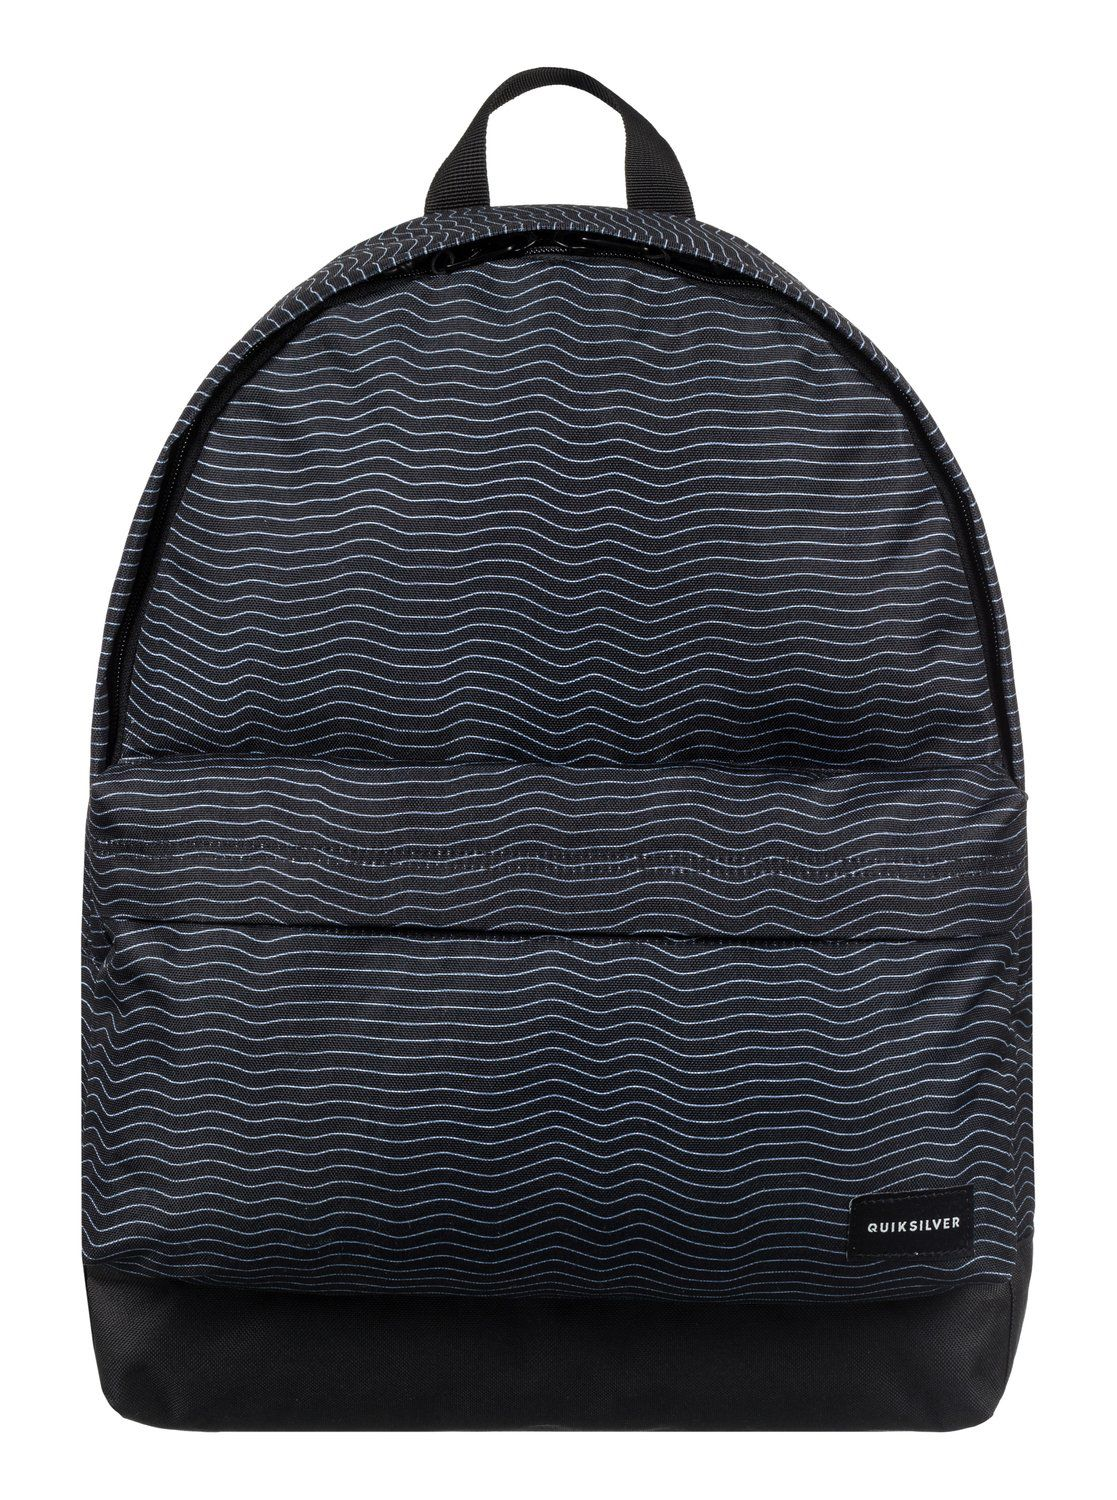 Quiksilver Quiksilver Everyday Poster 25L Backpack, Black